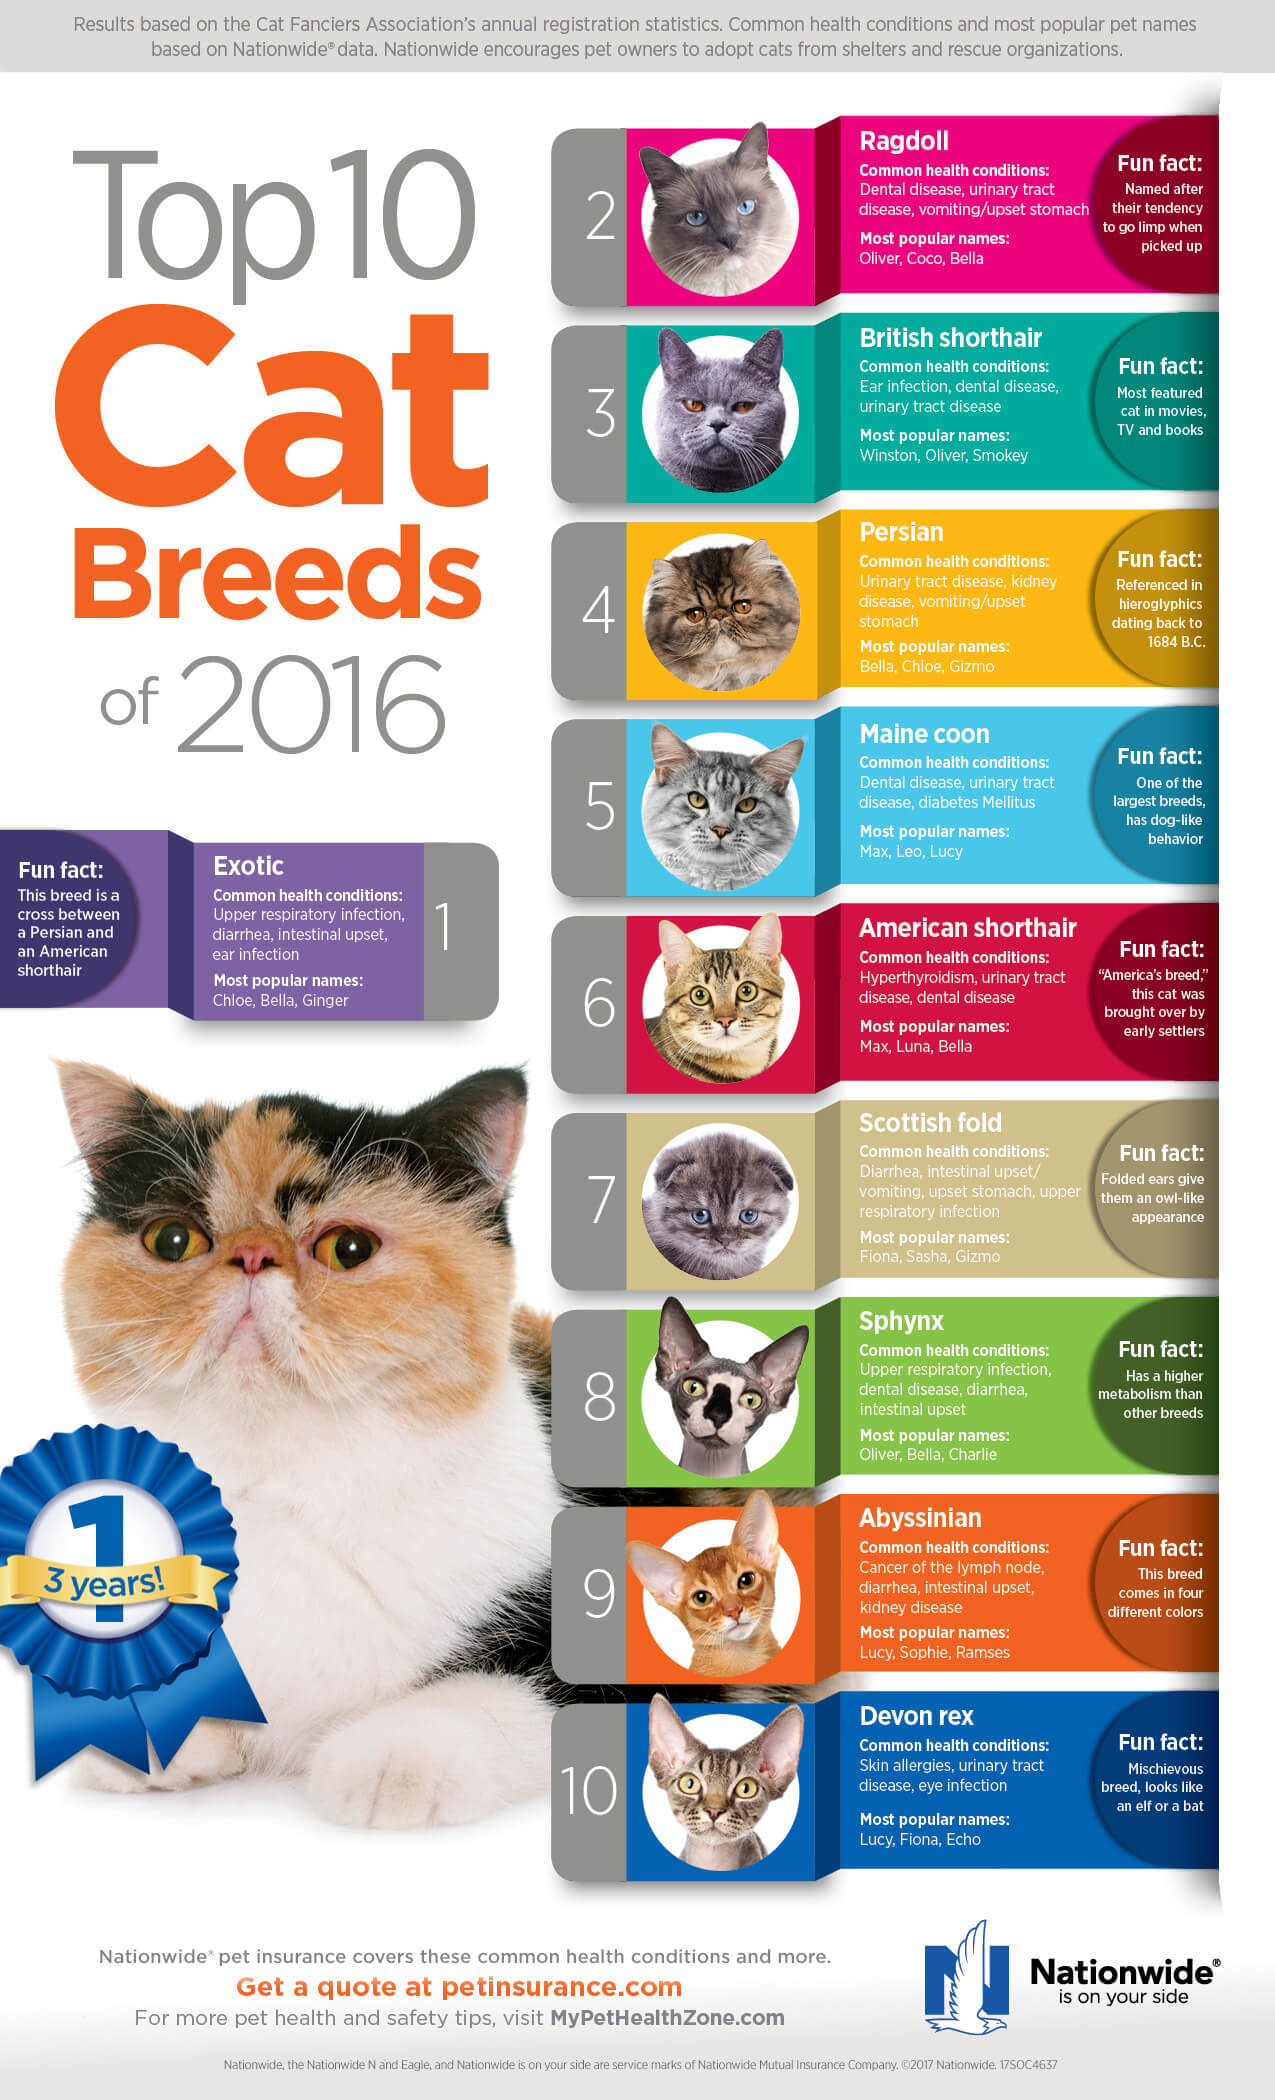 Top 10 Cat Breeds 2016 infographic FINAL